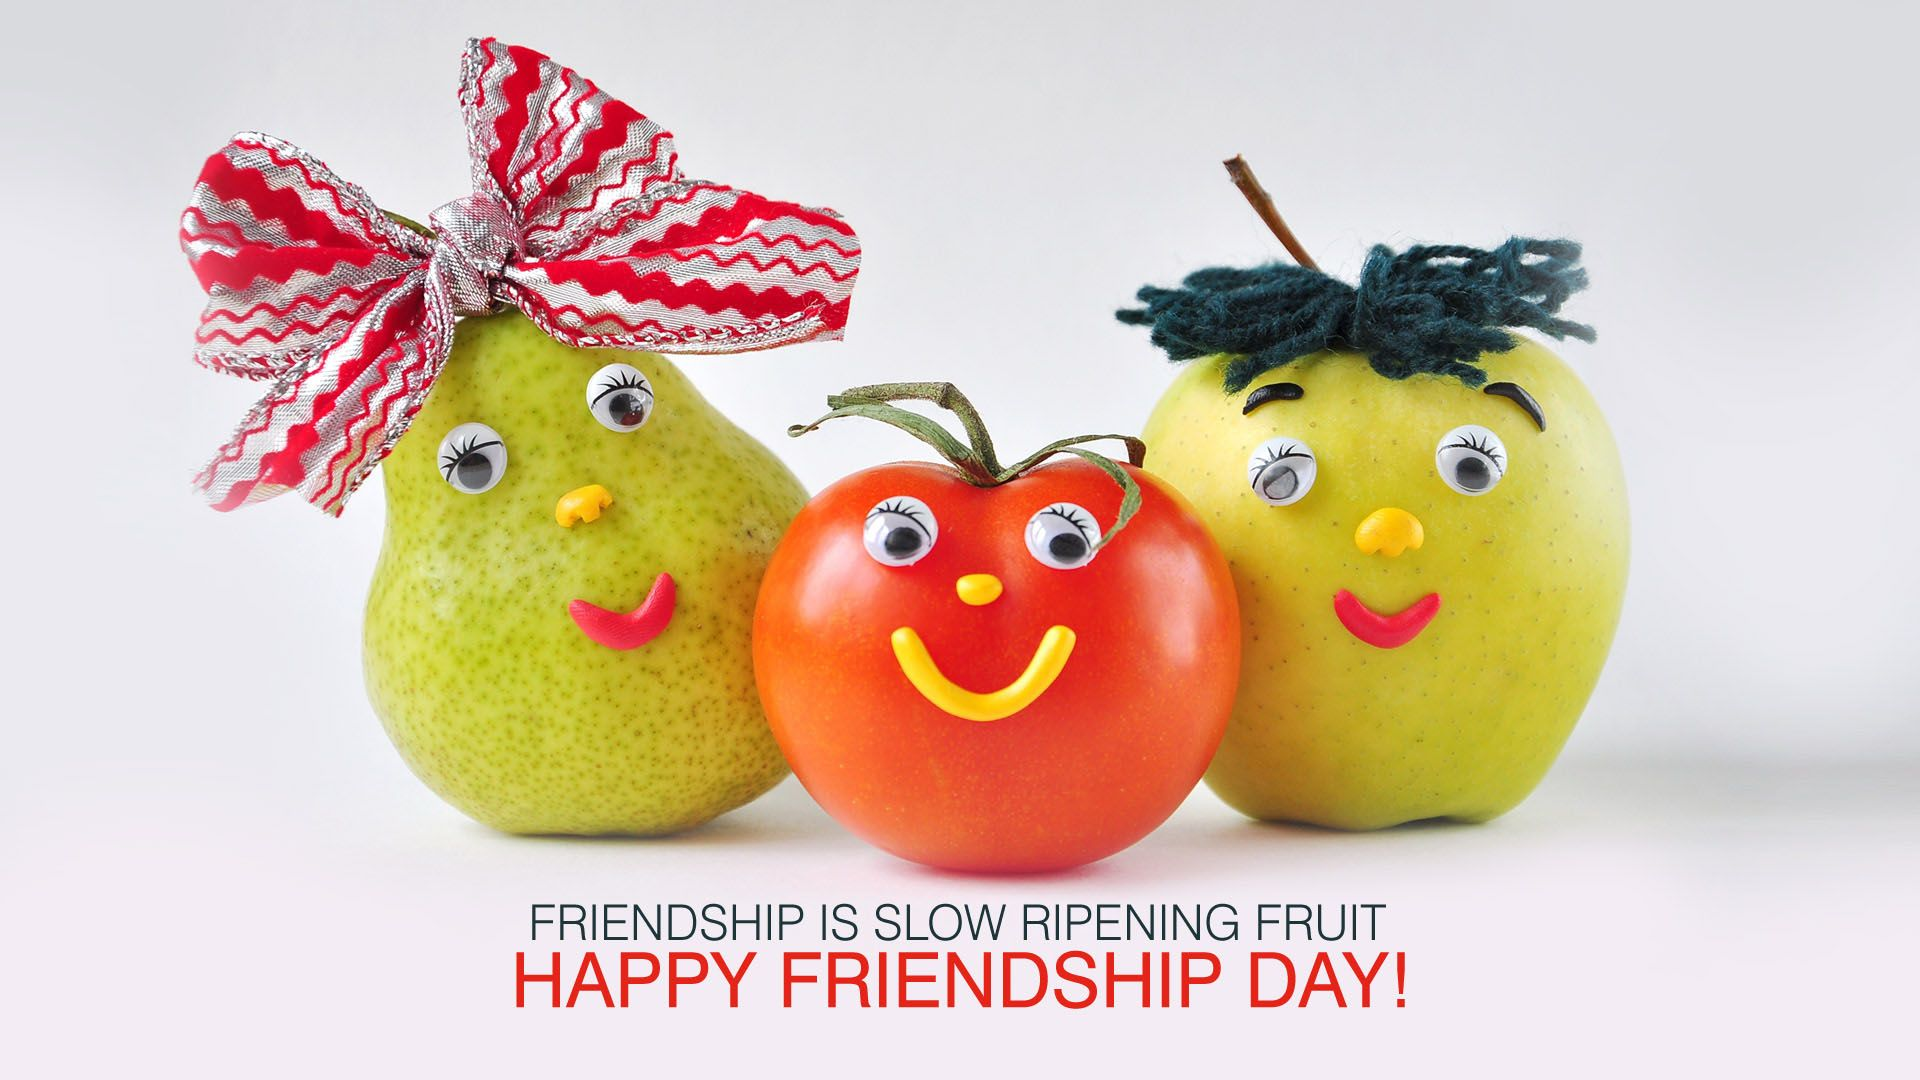 Friendship day 2014 free download of pictures newhdpics friendship day 2014 free download of pictures altavistaventures Image collections